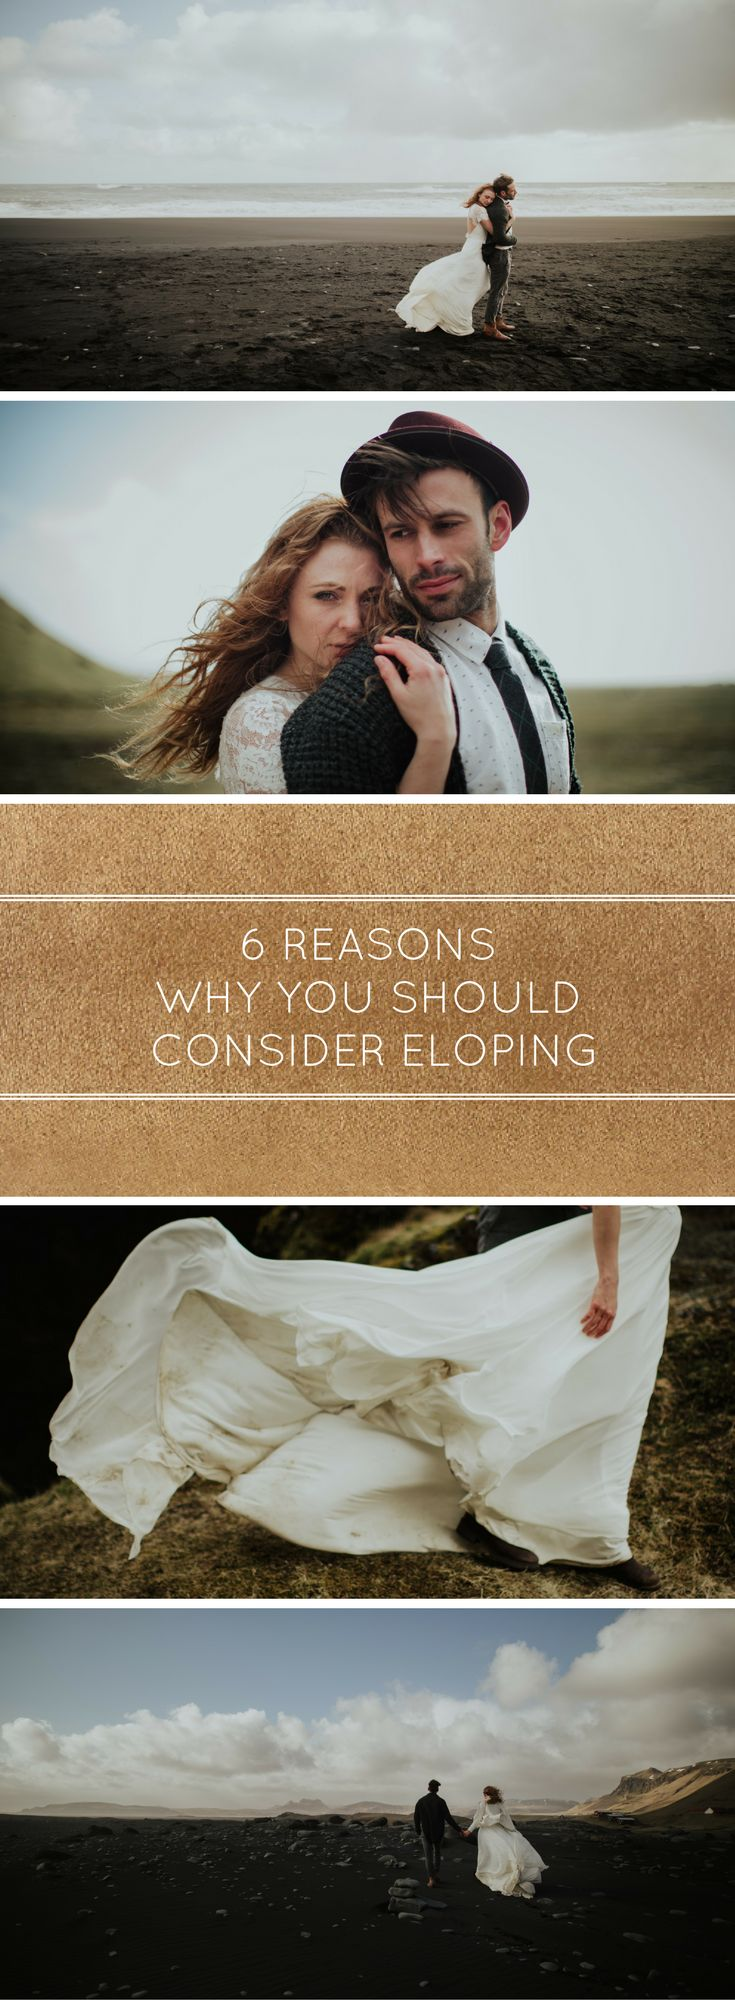 Can't decide if you should elope? Here are 6 reasons why you should consider it.